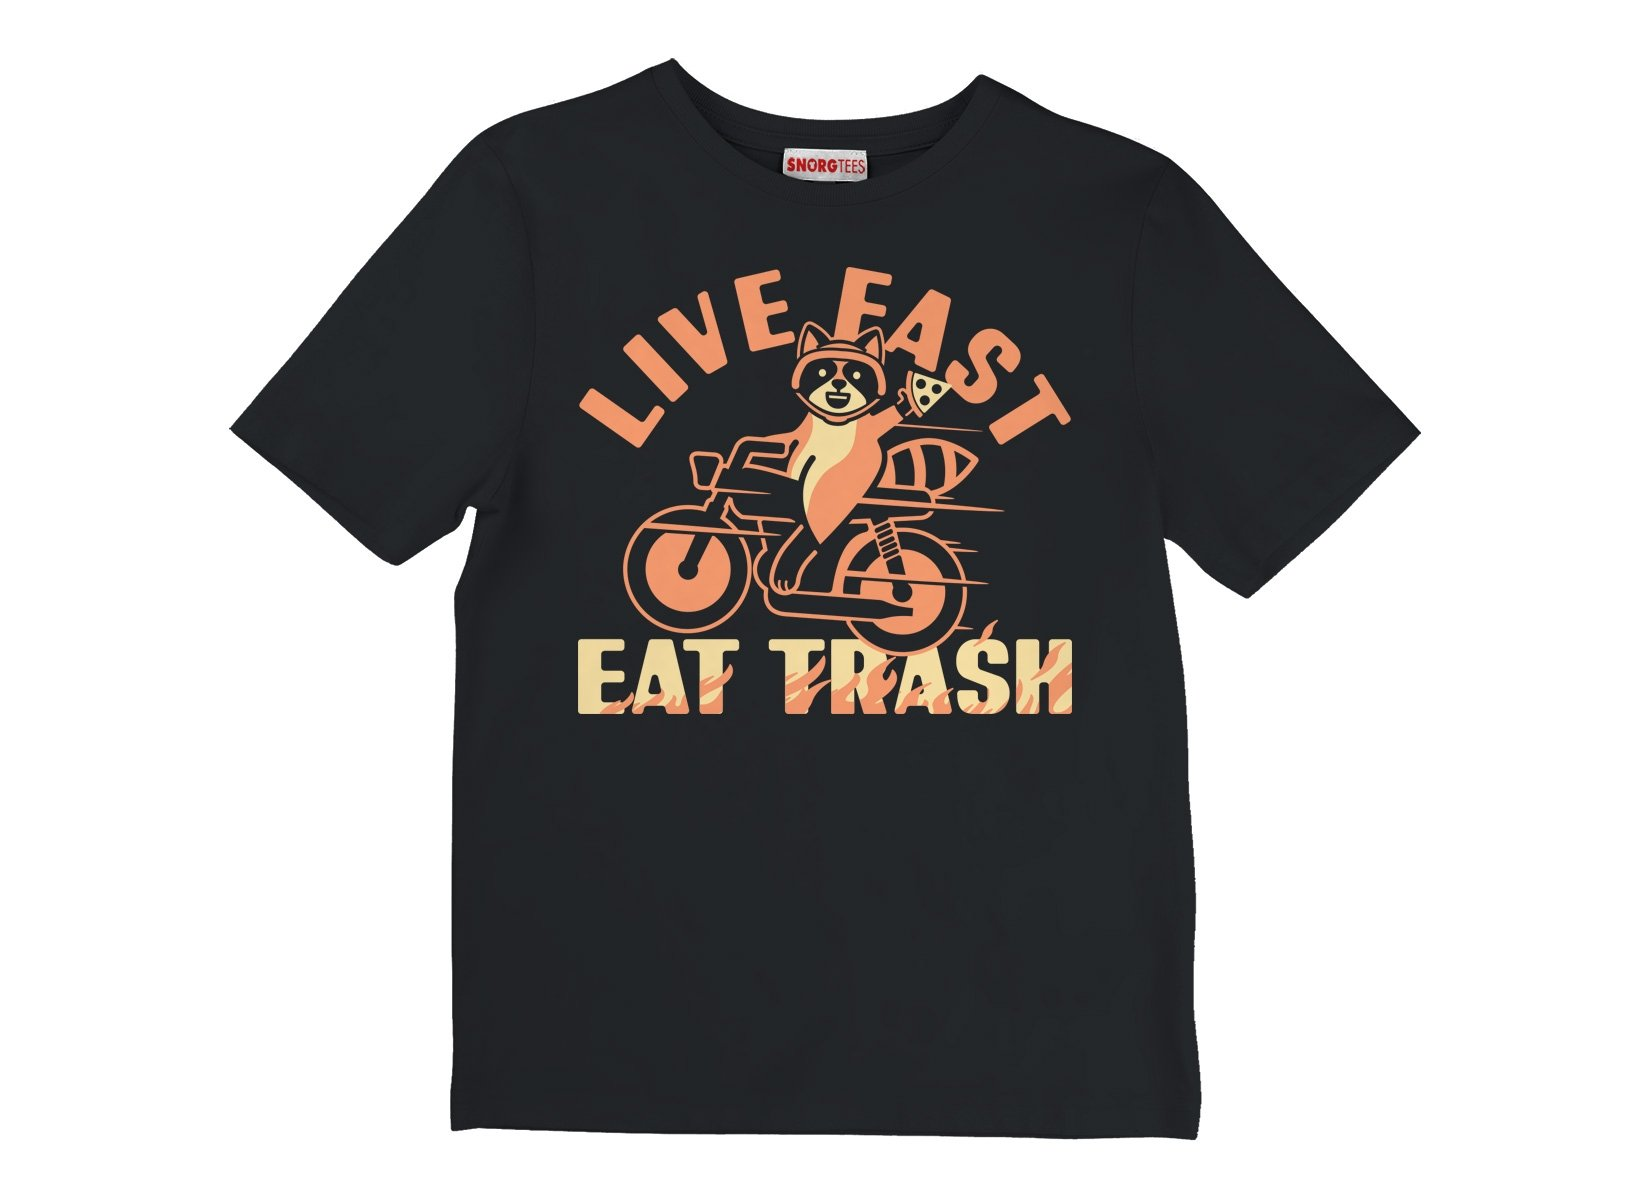 Live Fast Eat Trash on Kids T-Shirt